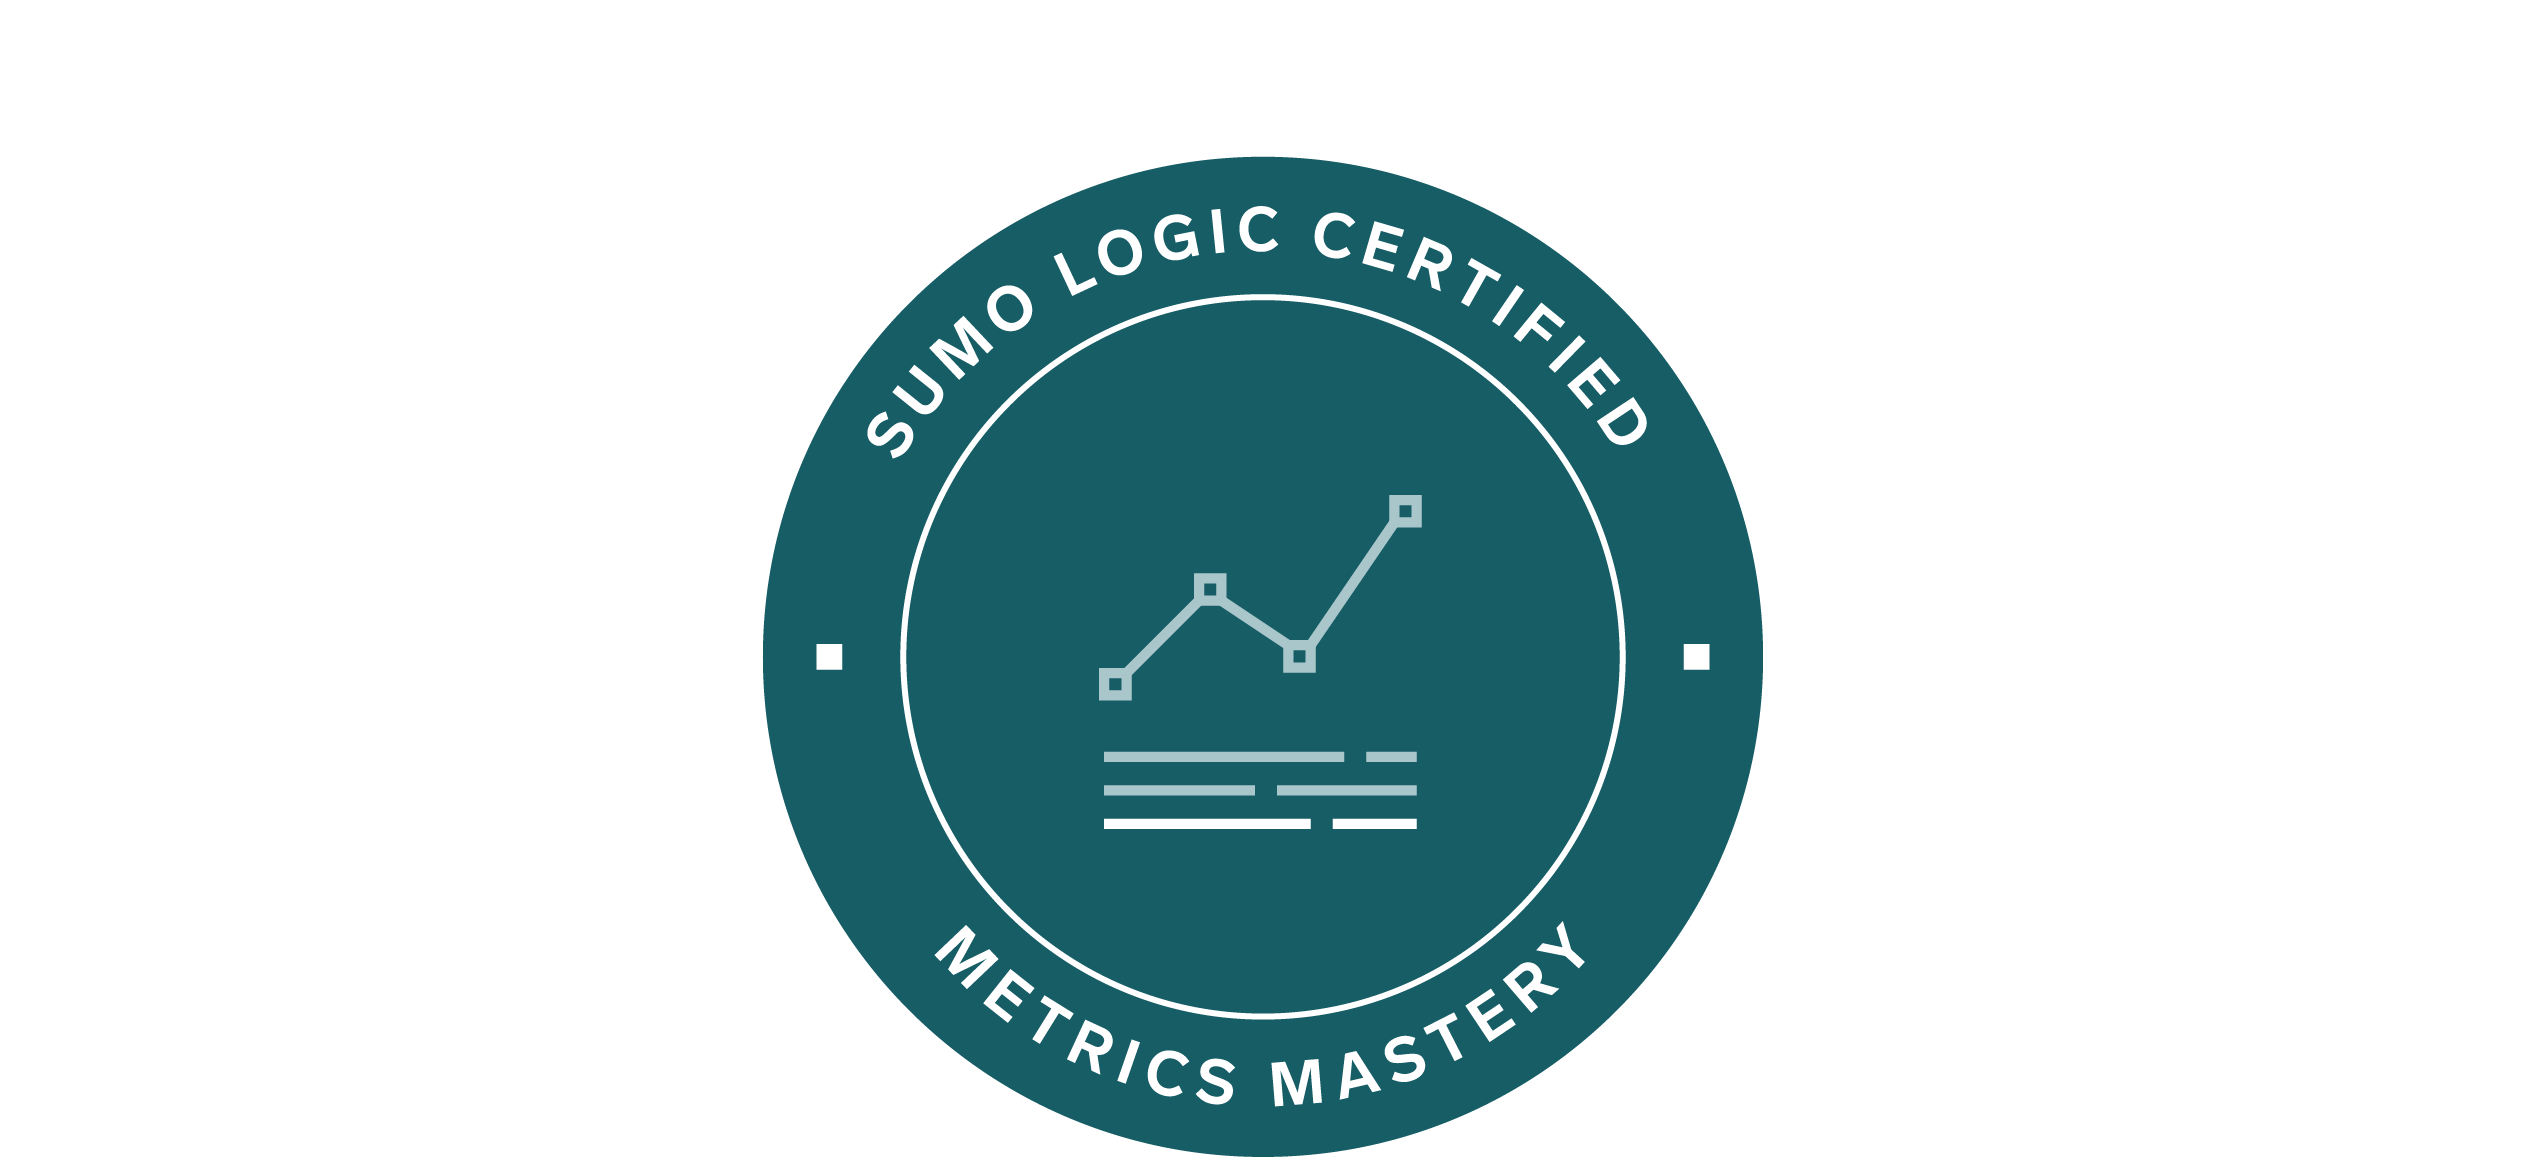 Metrics querying and alerts